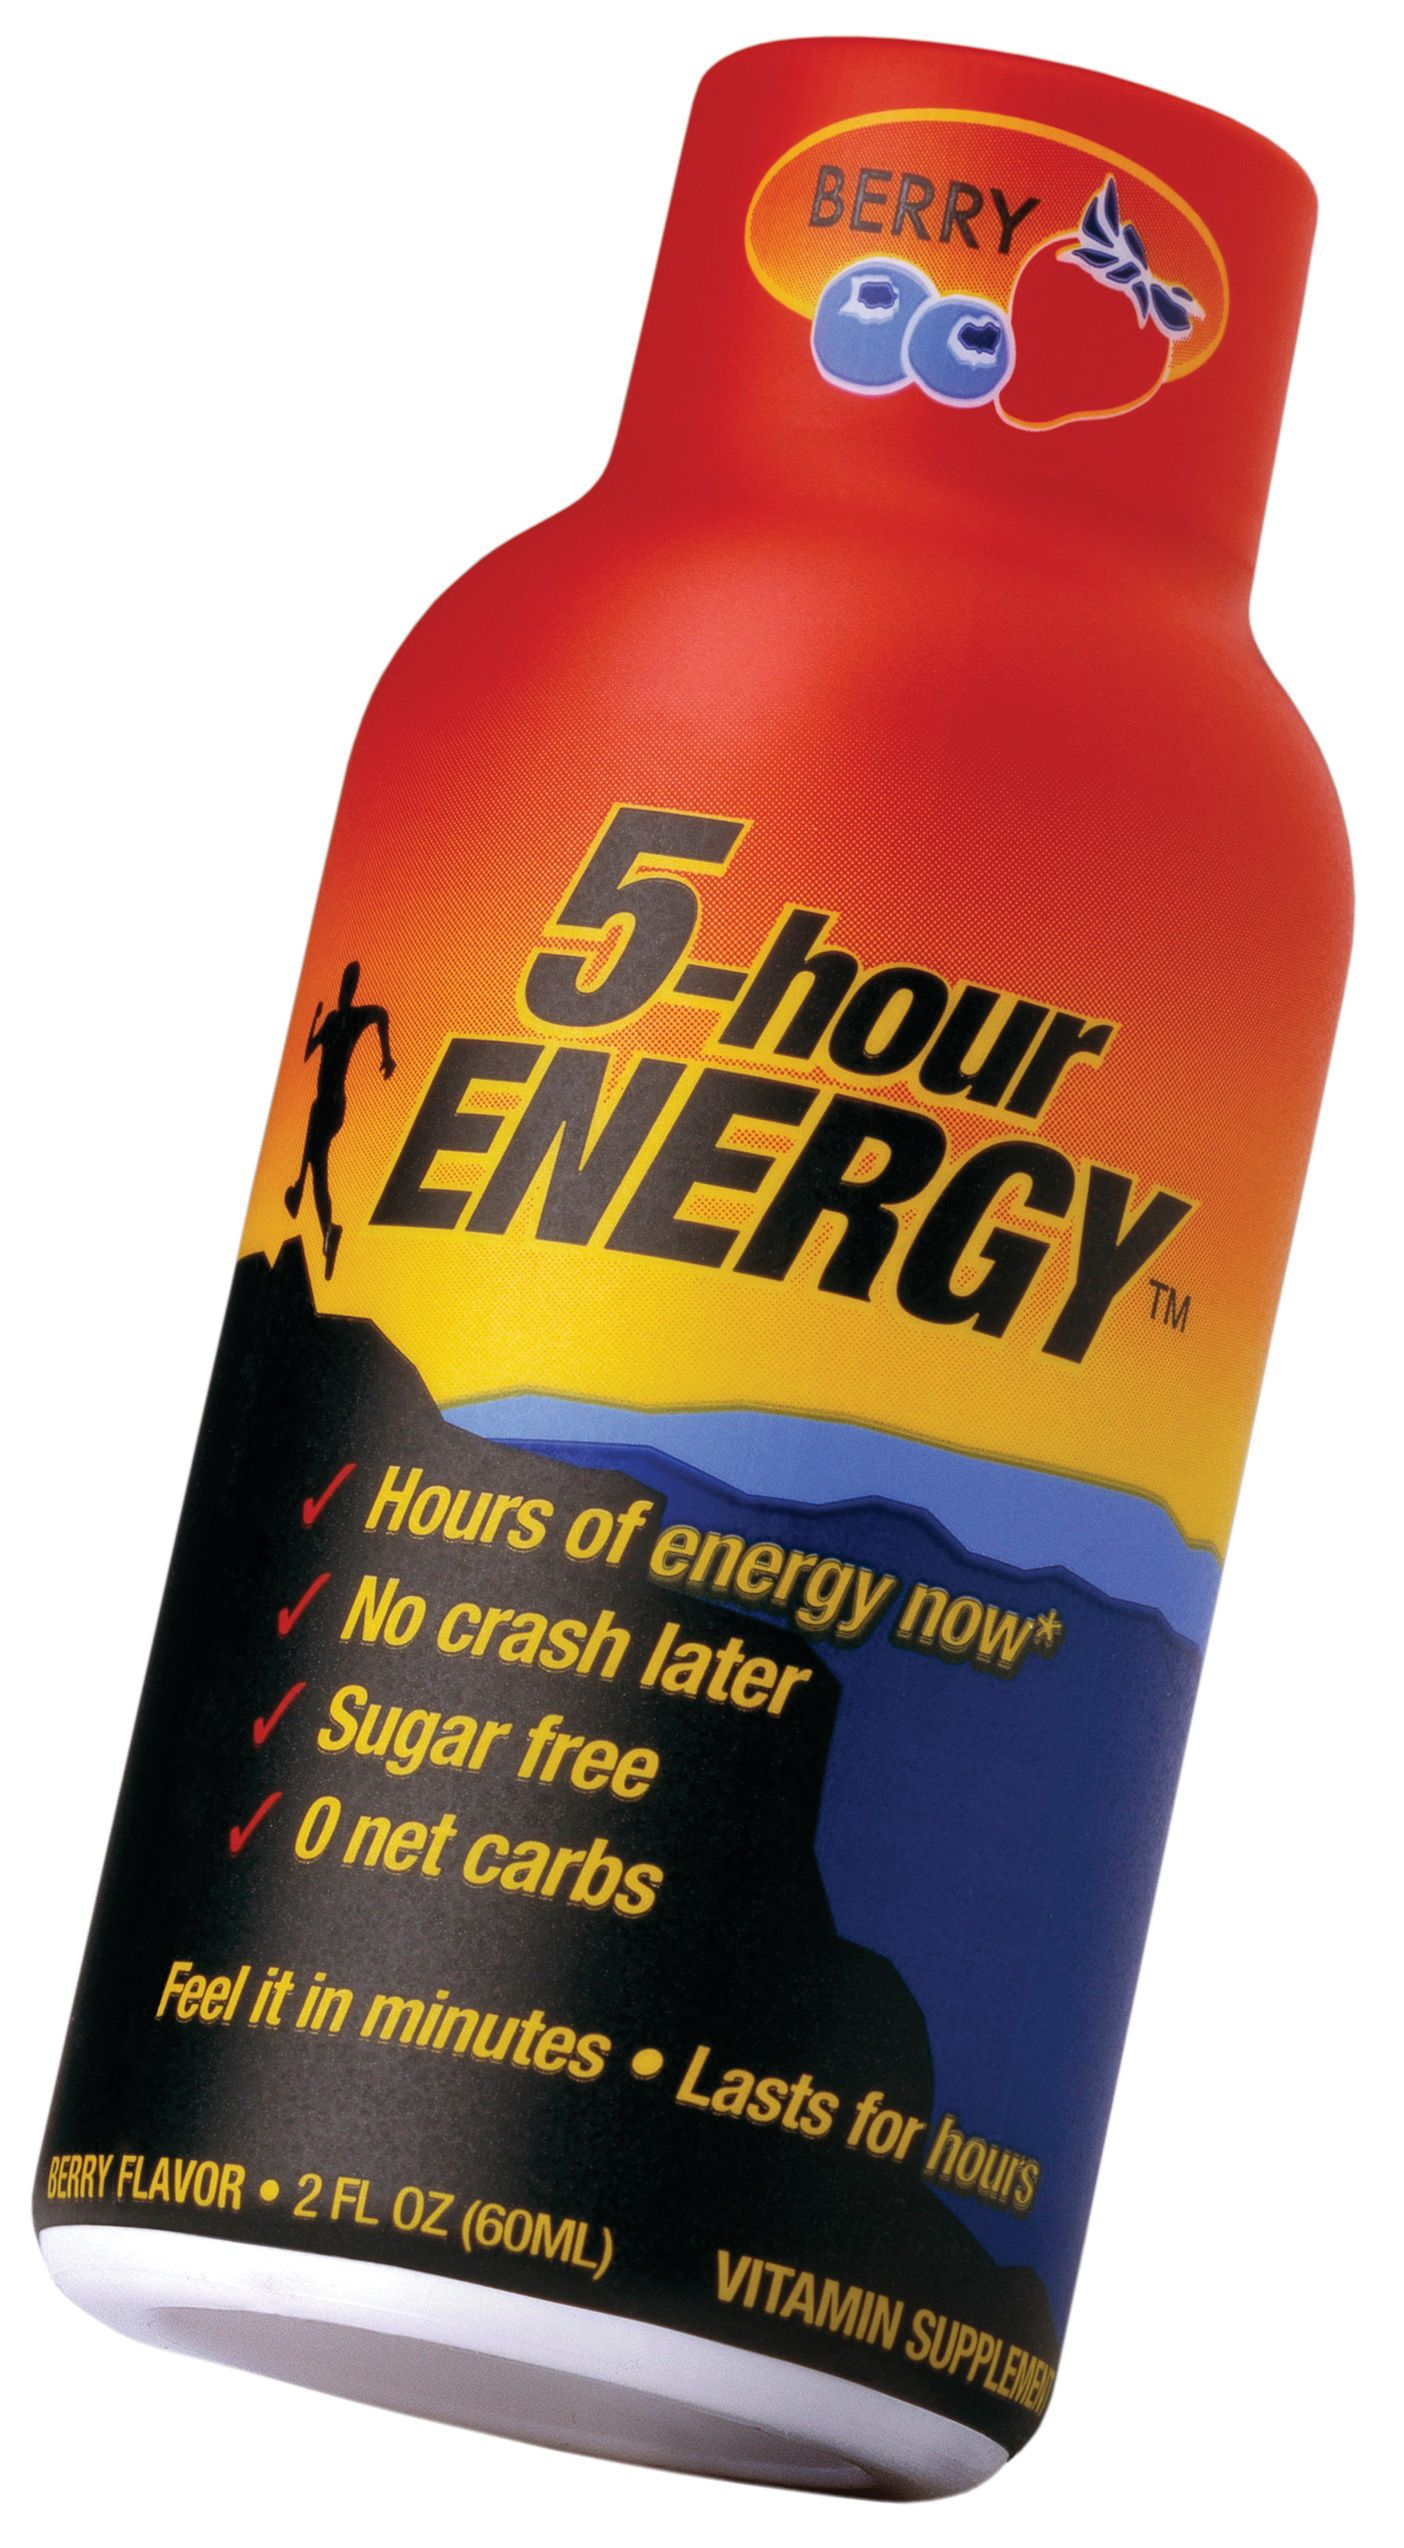 Energy Drink: mini size | Travel, trial-sized or gift packs ...